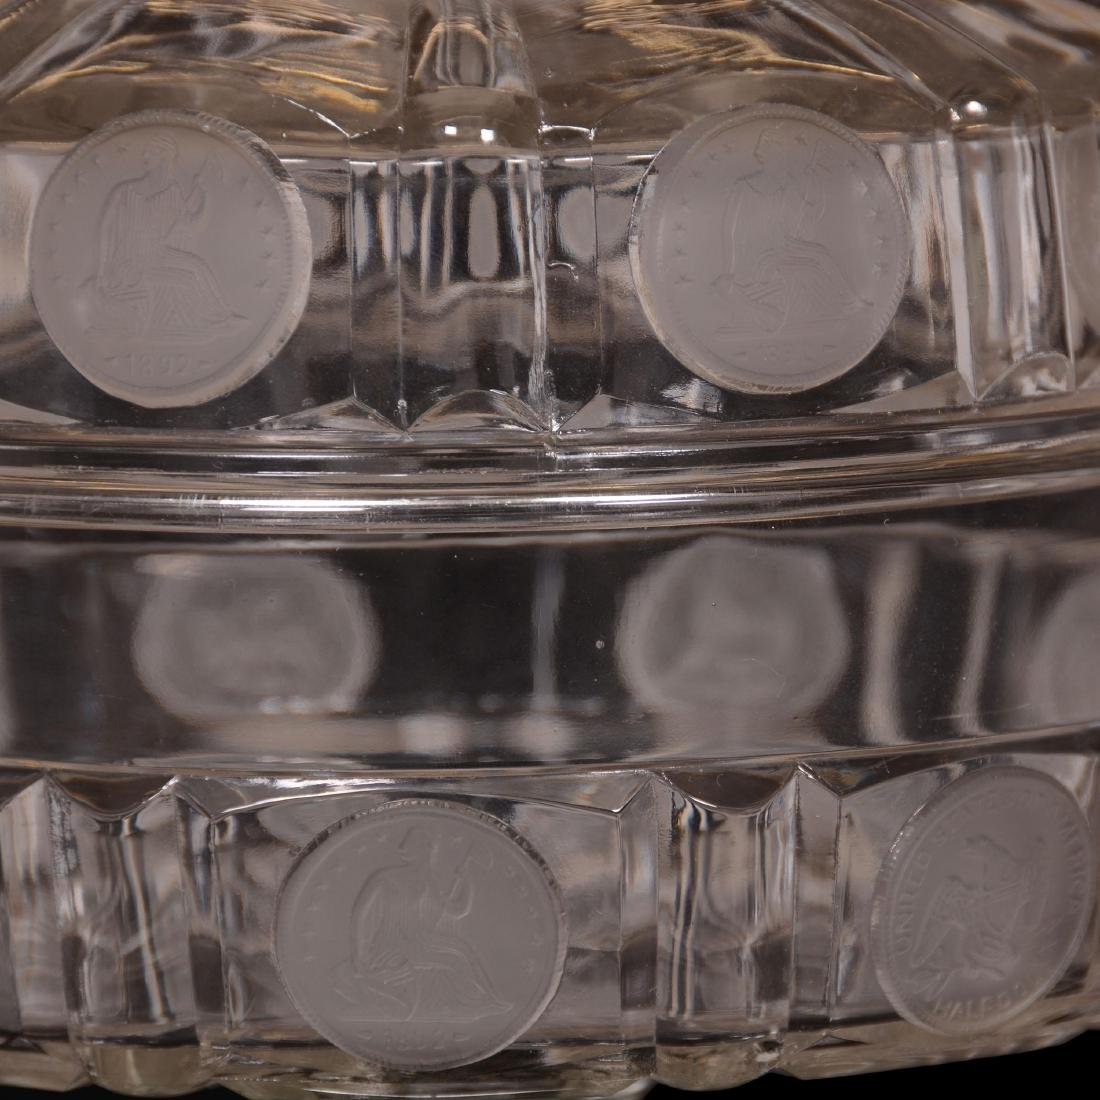 1892 American Coin Glass Covered Compote - 2